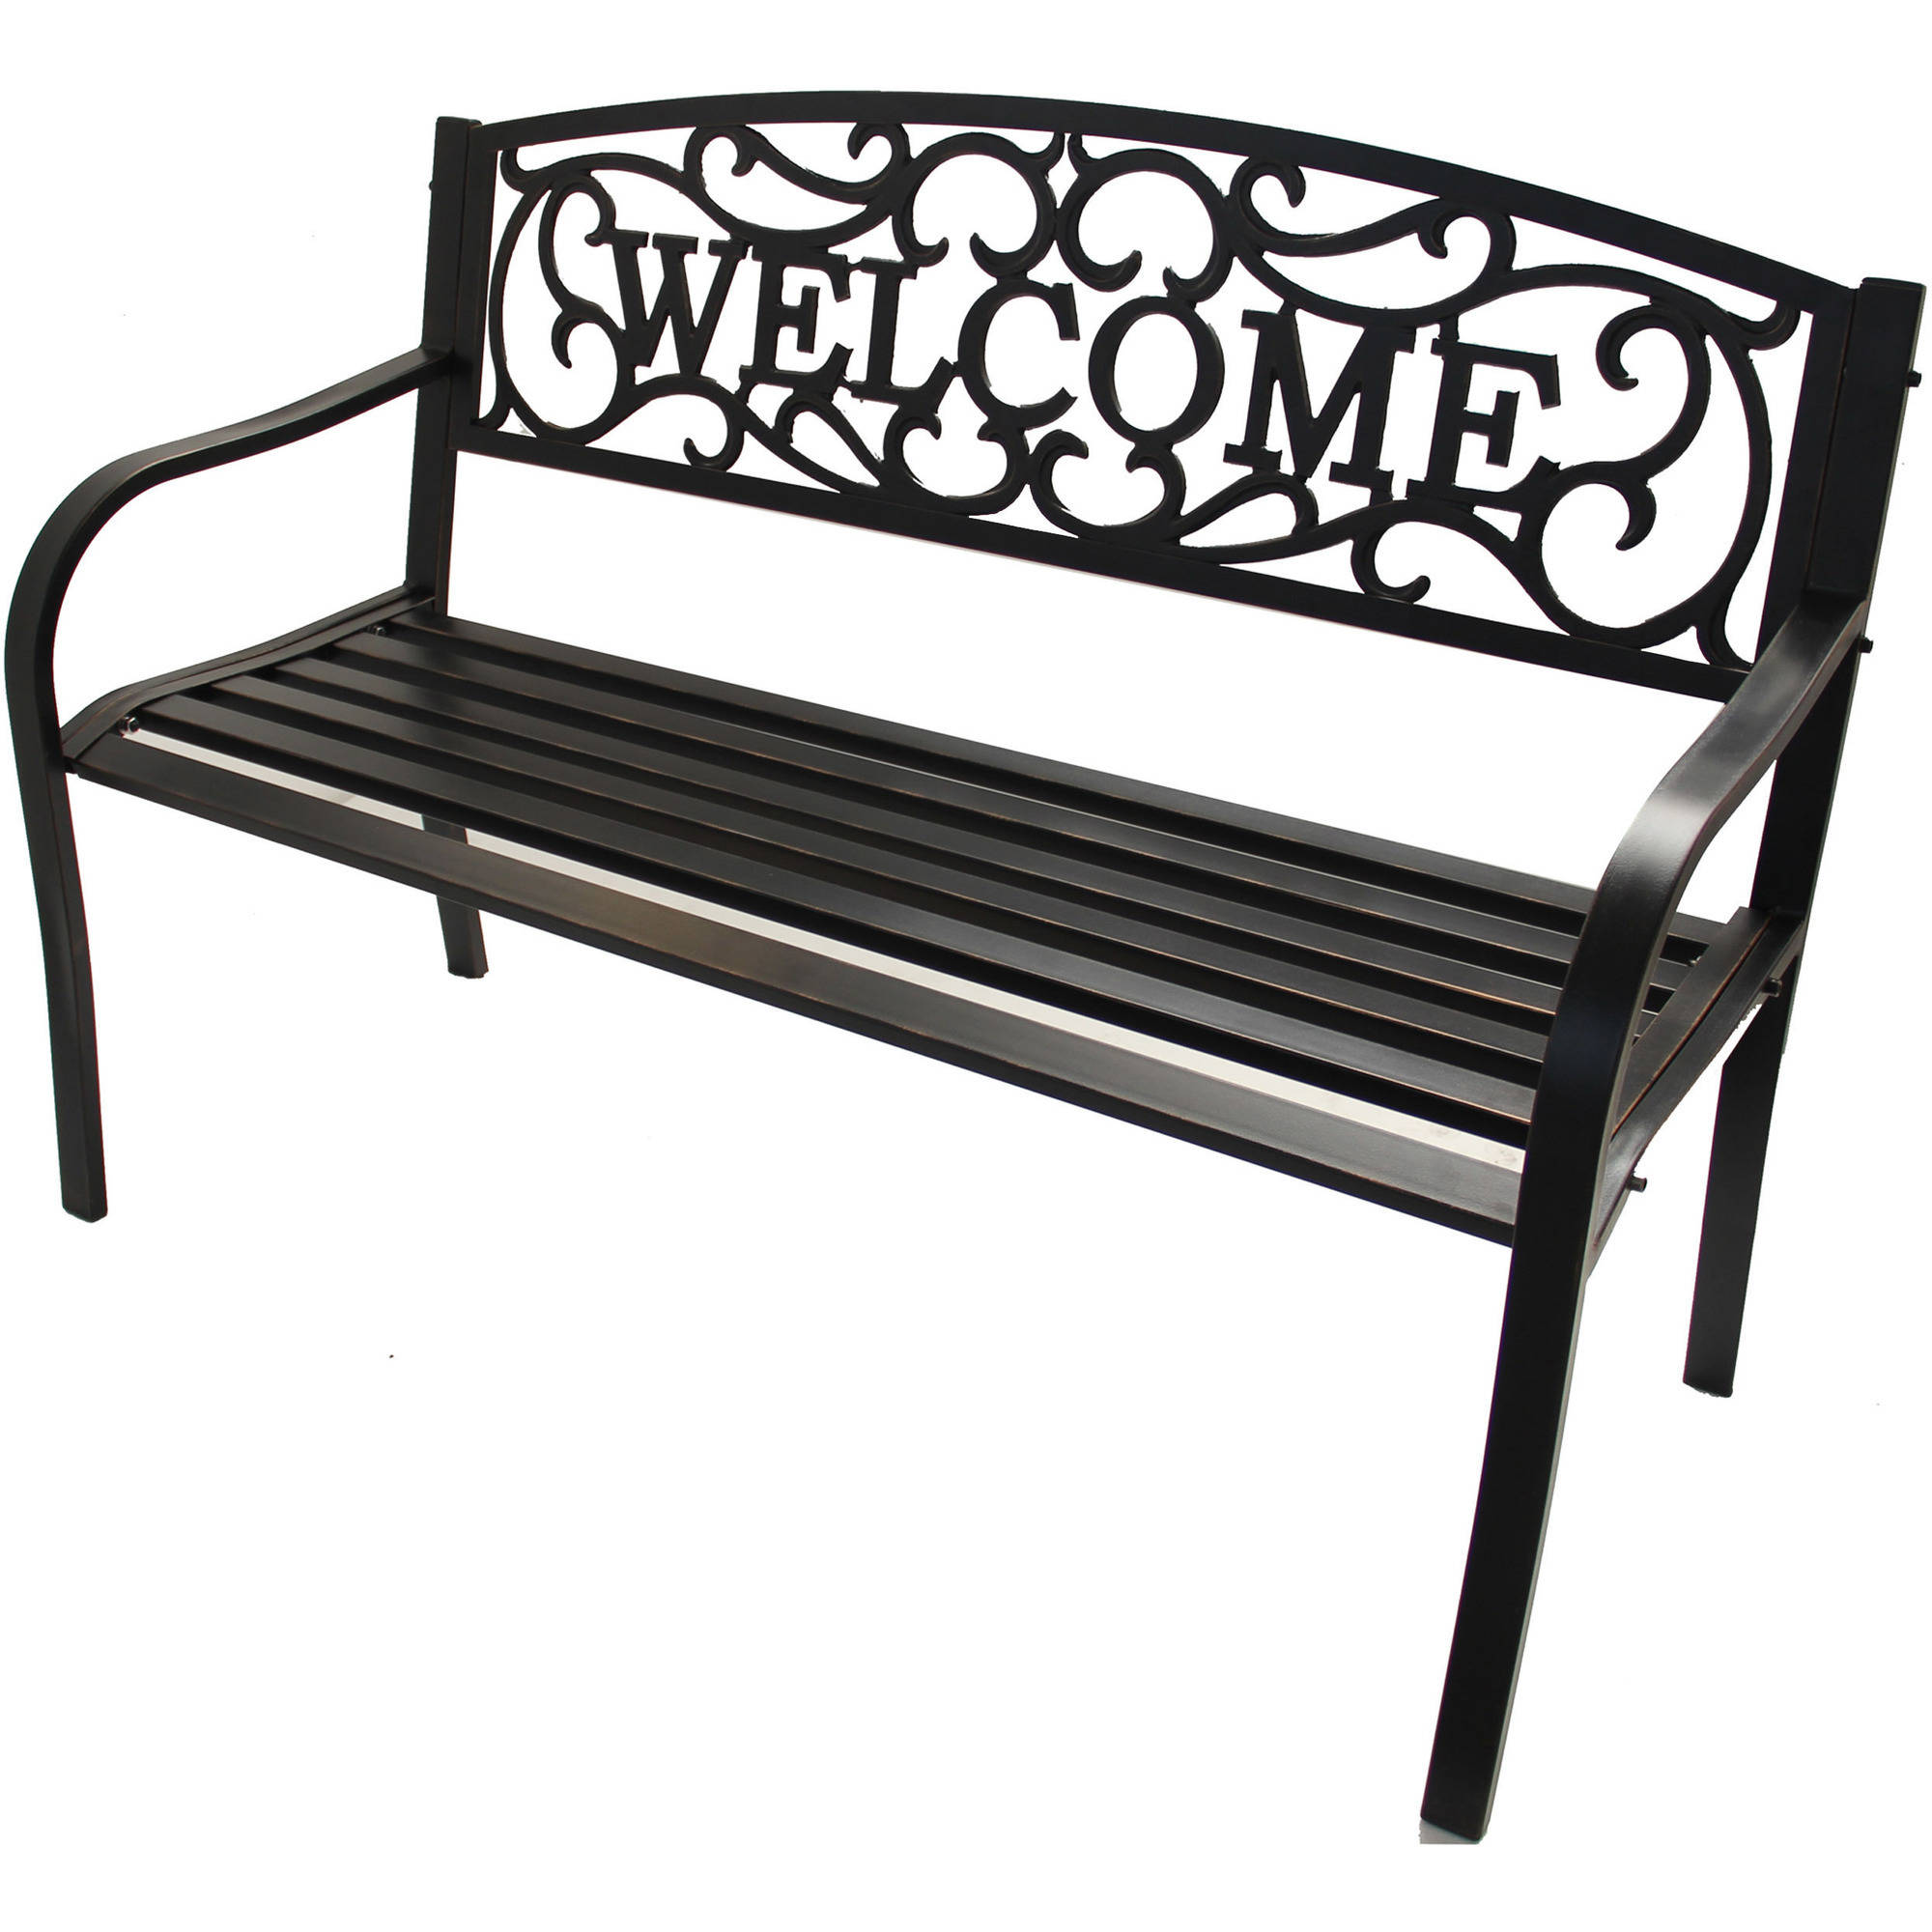 Better Homes U0026 Gardens Welcome Outdoor Bench   Walmart.com